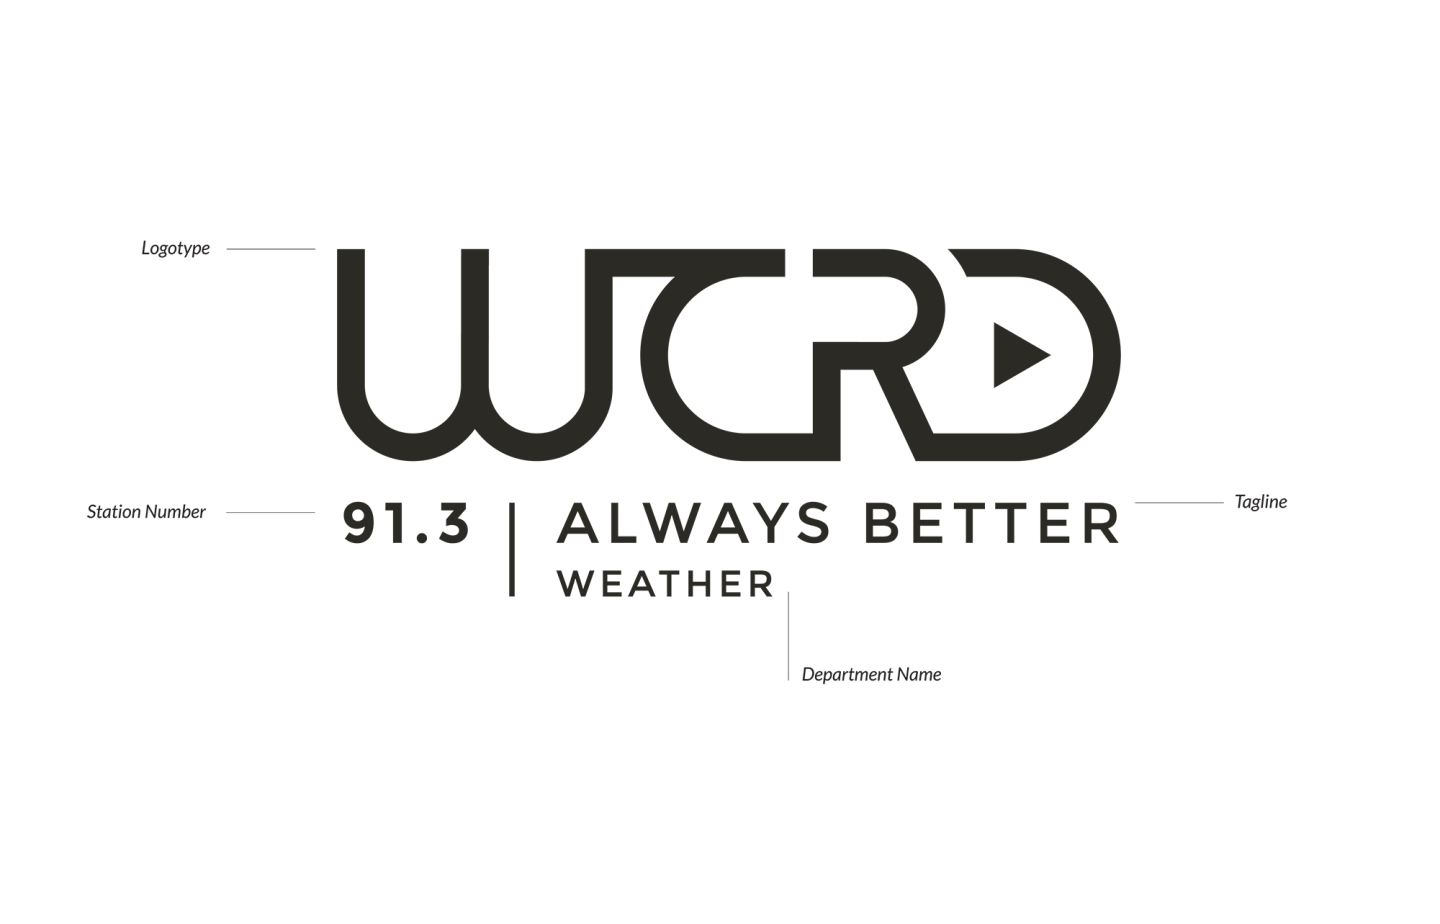 Components of the WCRD logo lockups